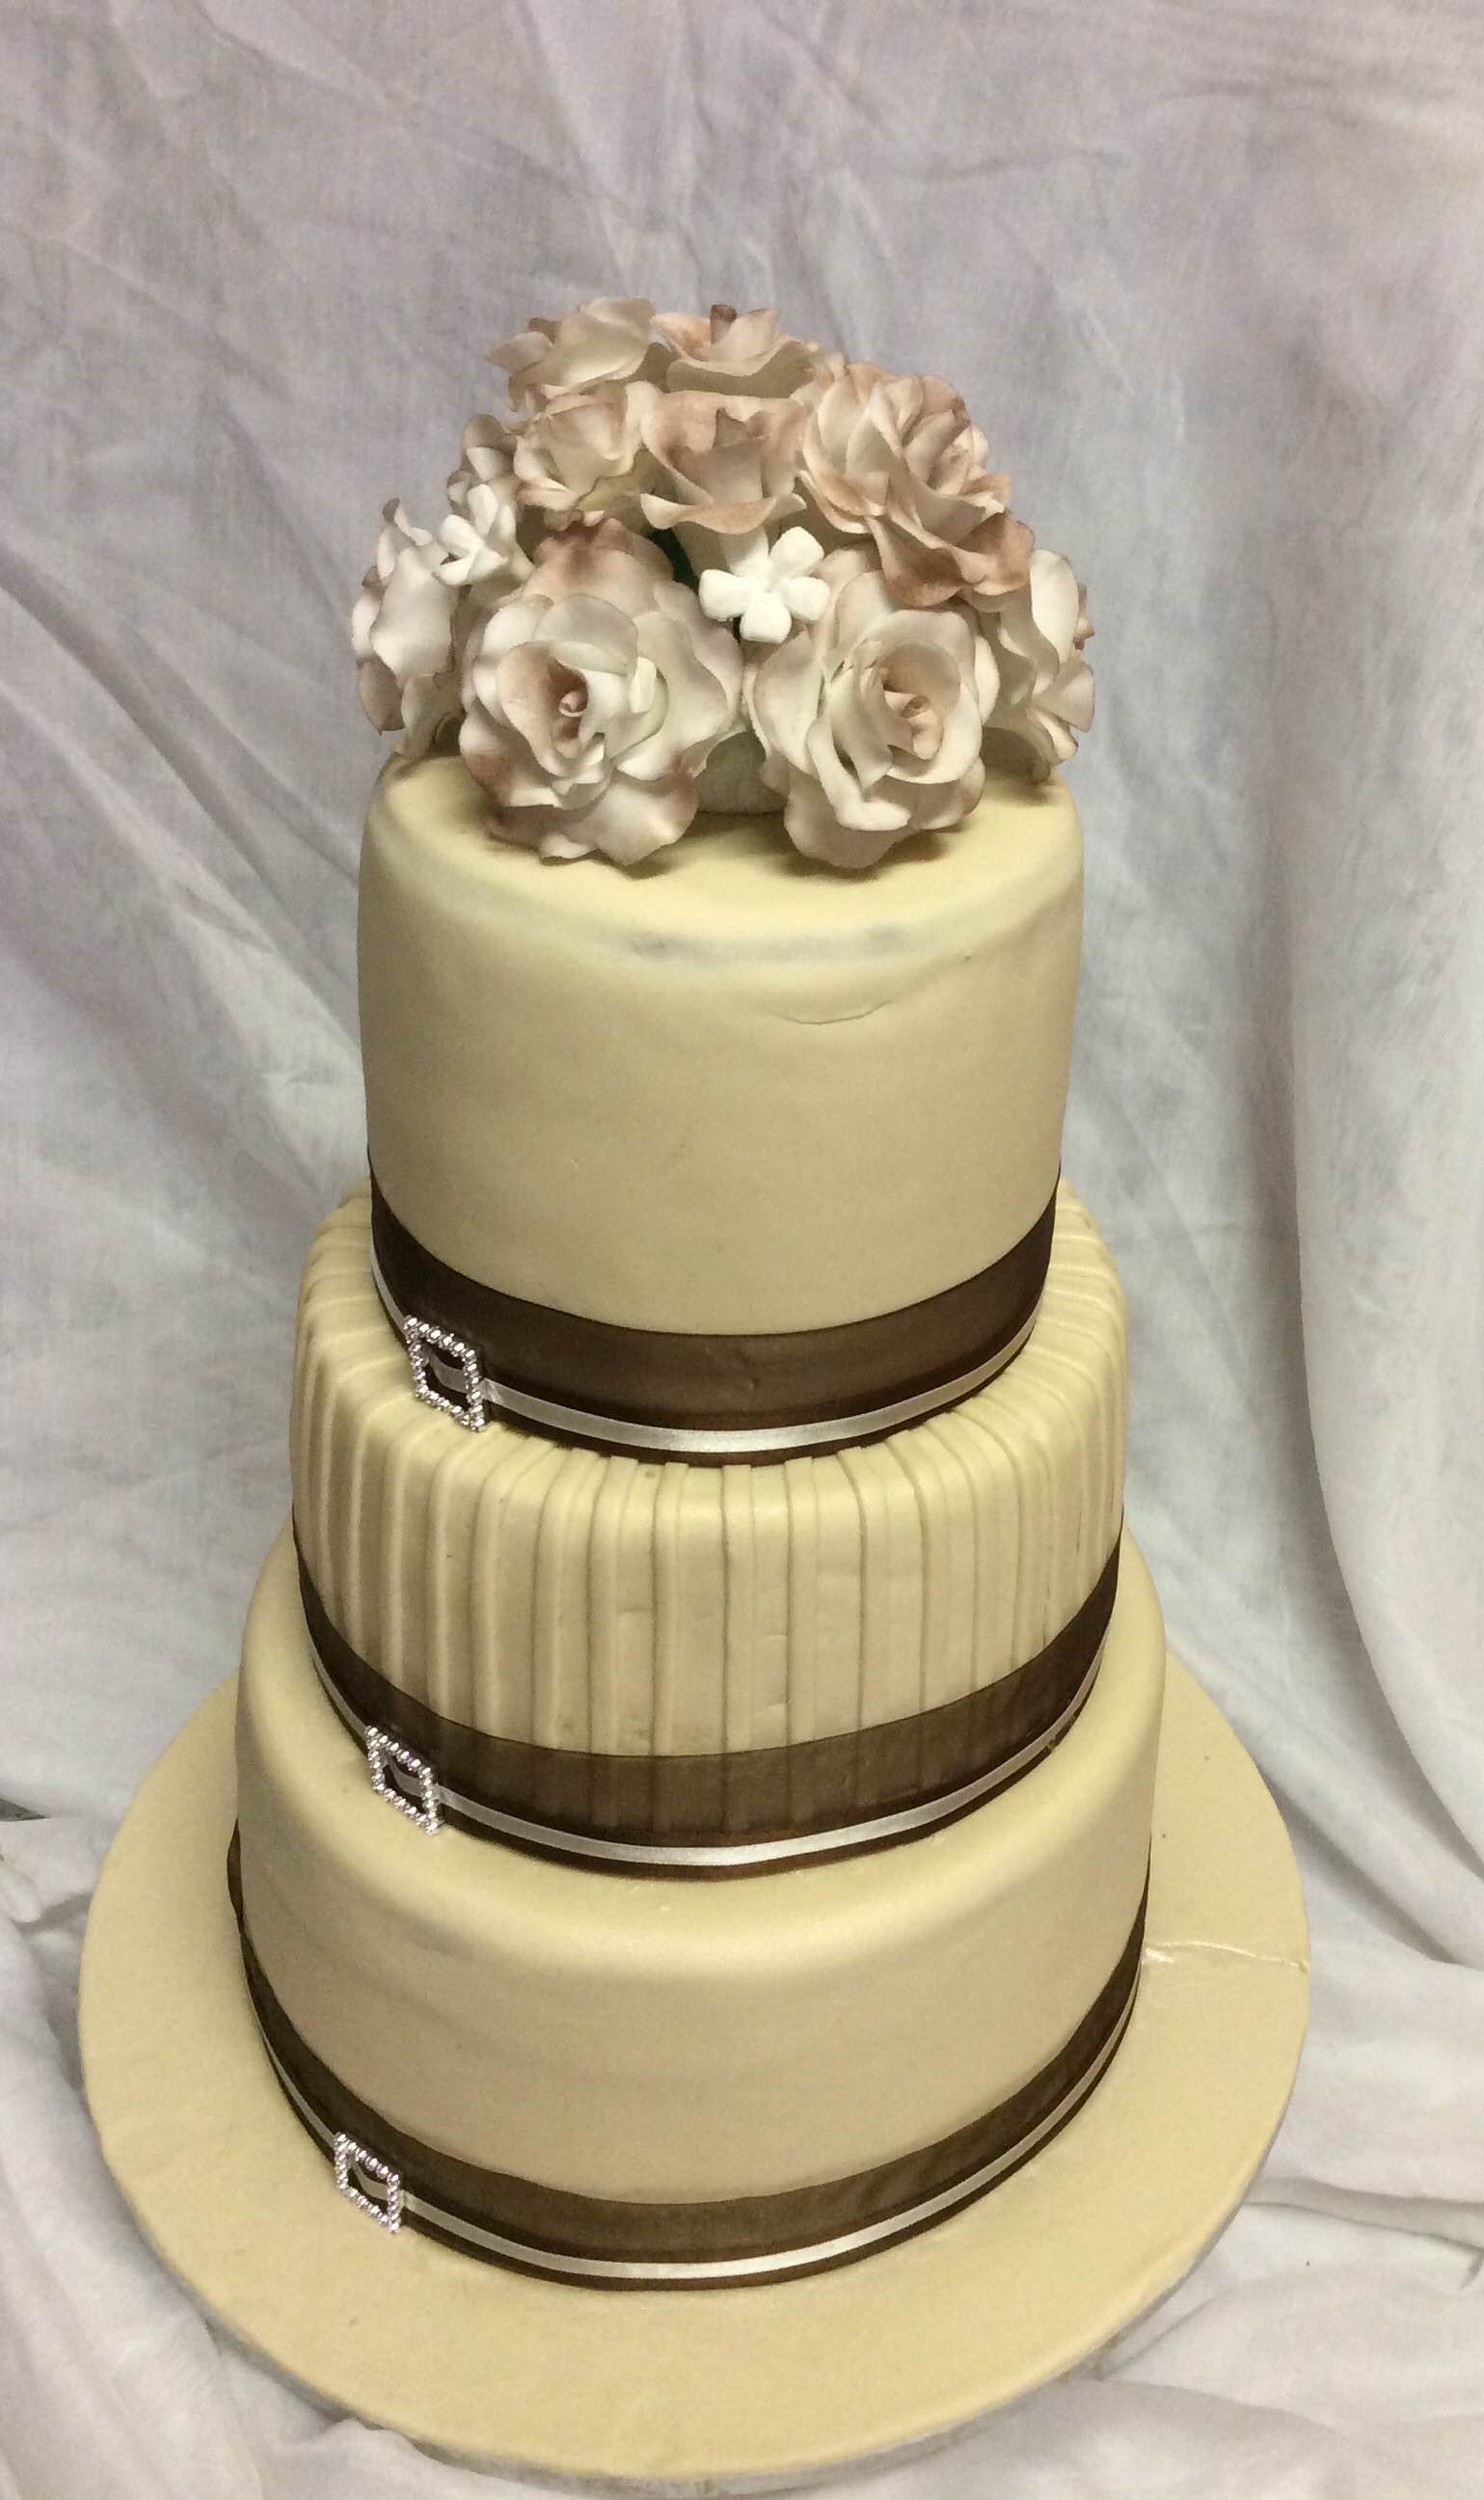 3-tier wedding cakes – R2500 to R4500 | Baked by Nataleen